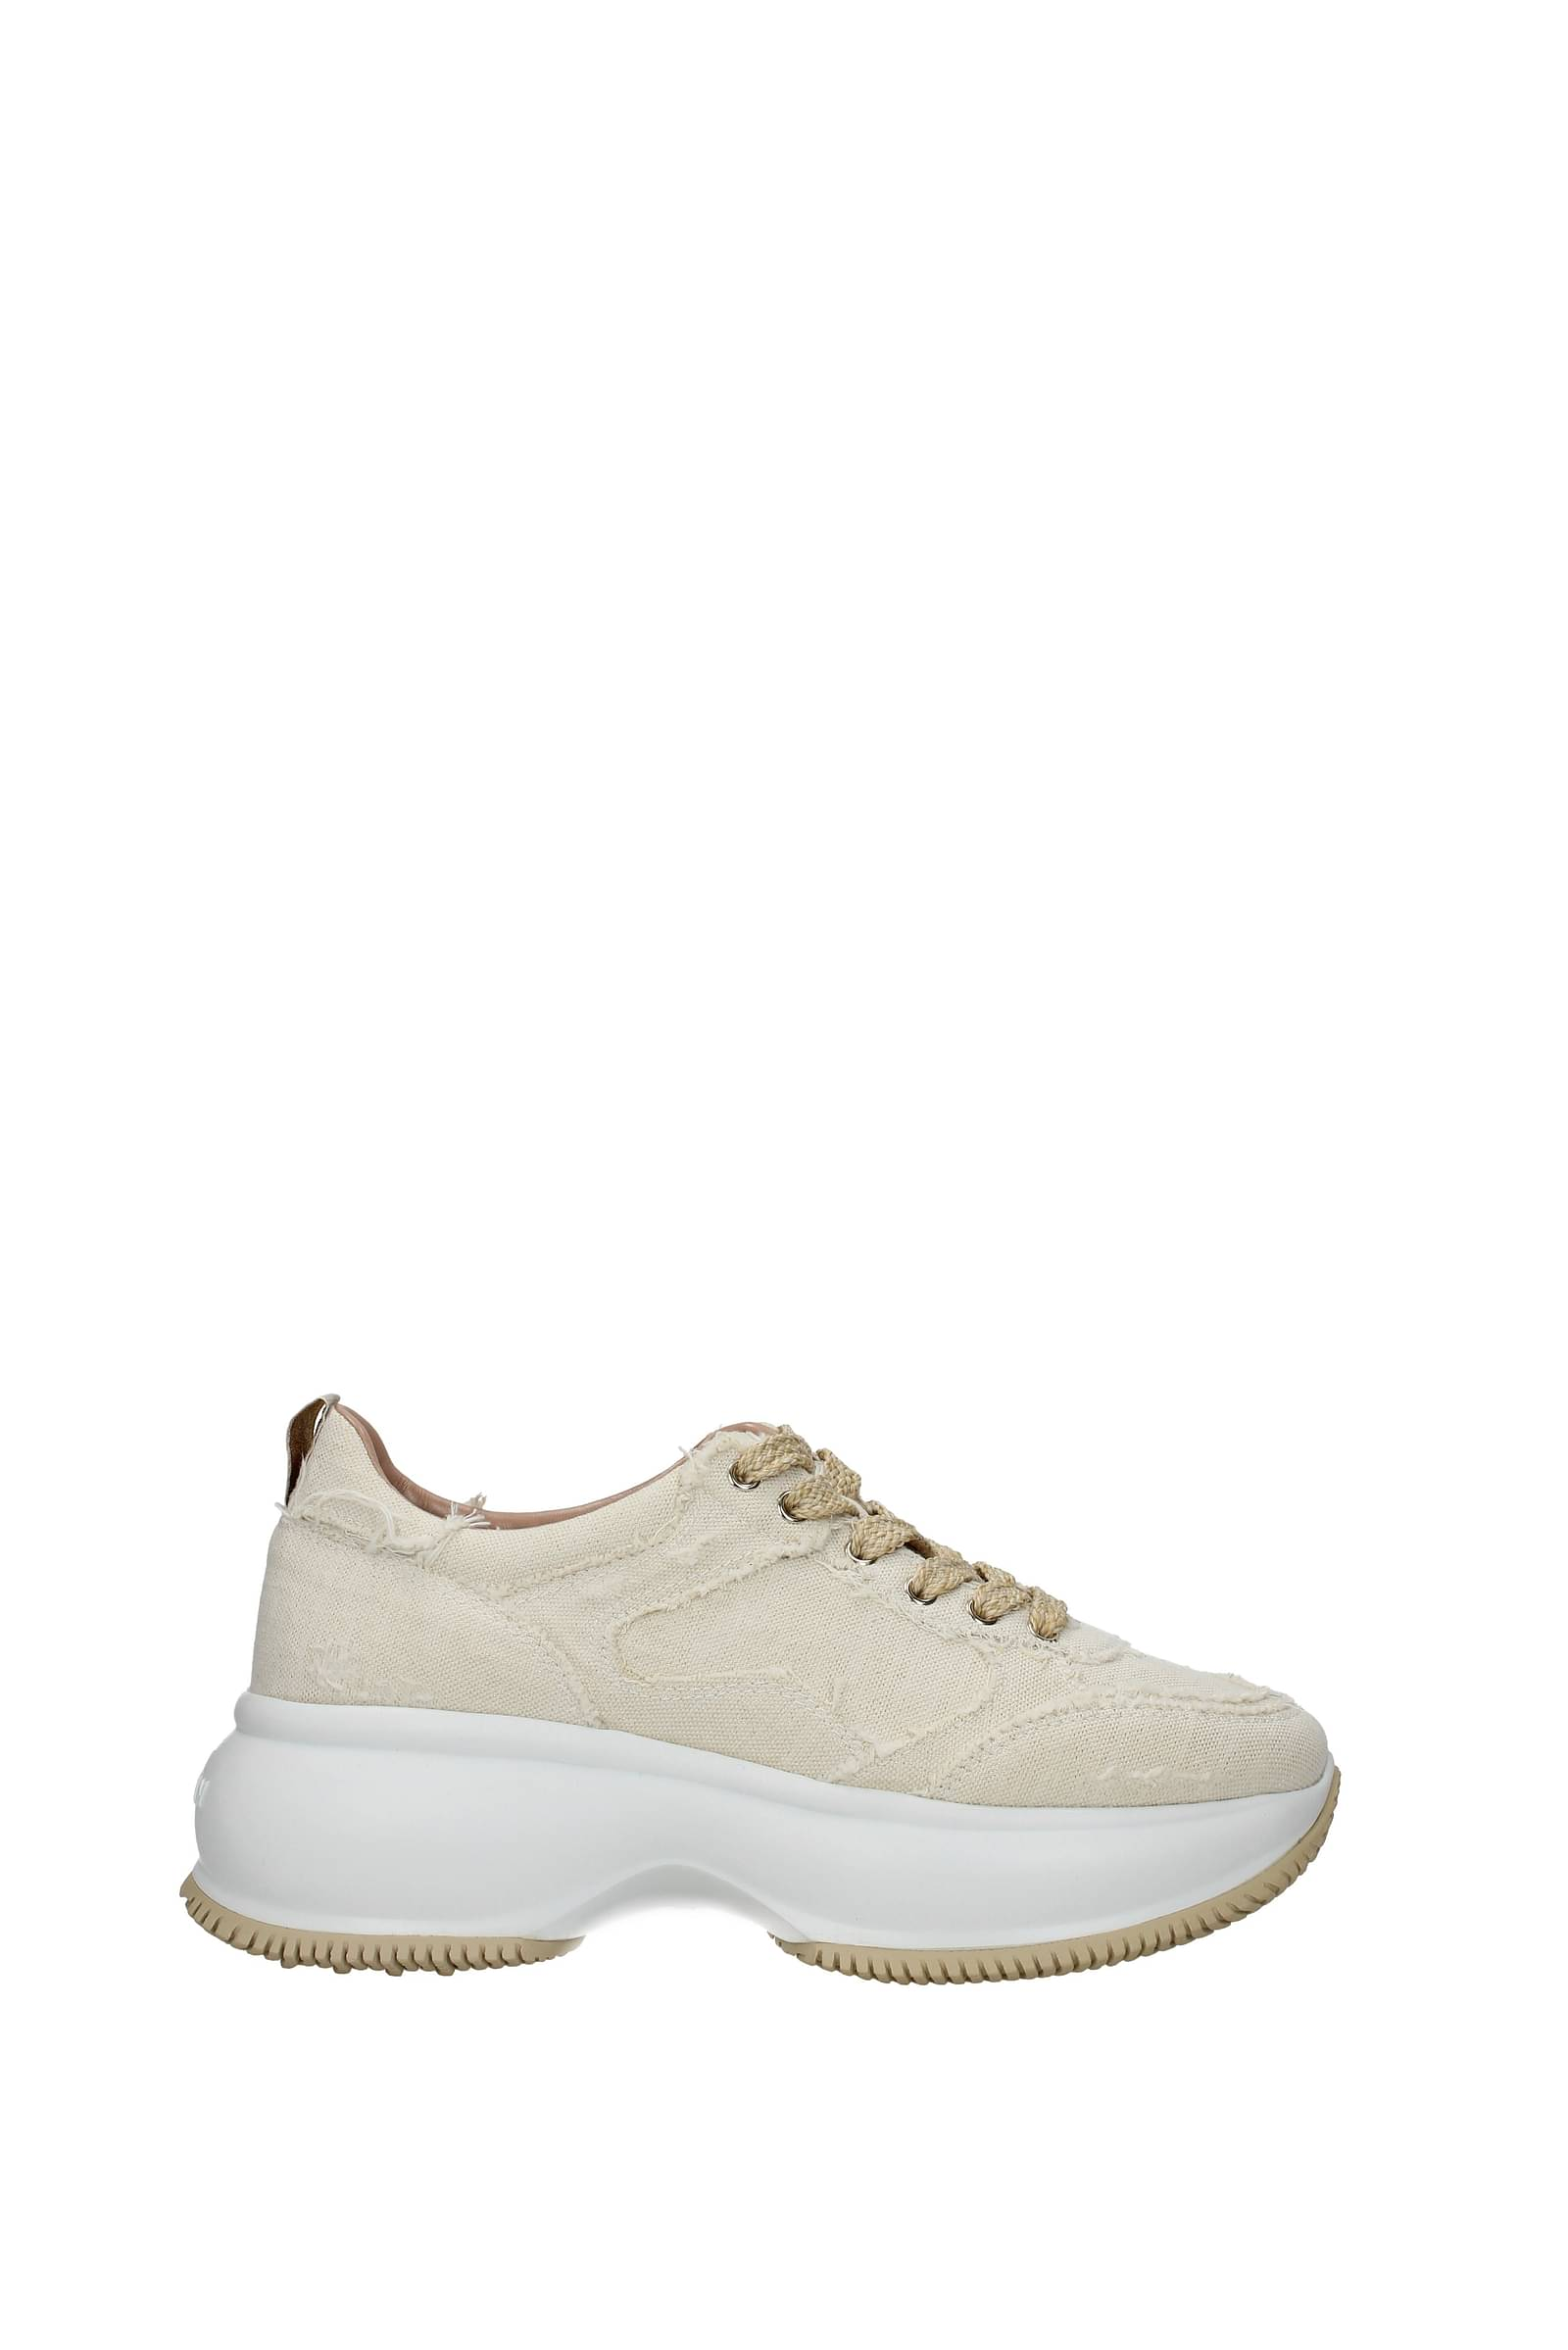 Hogan outlet: sneakers and shoes on